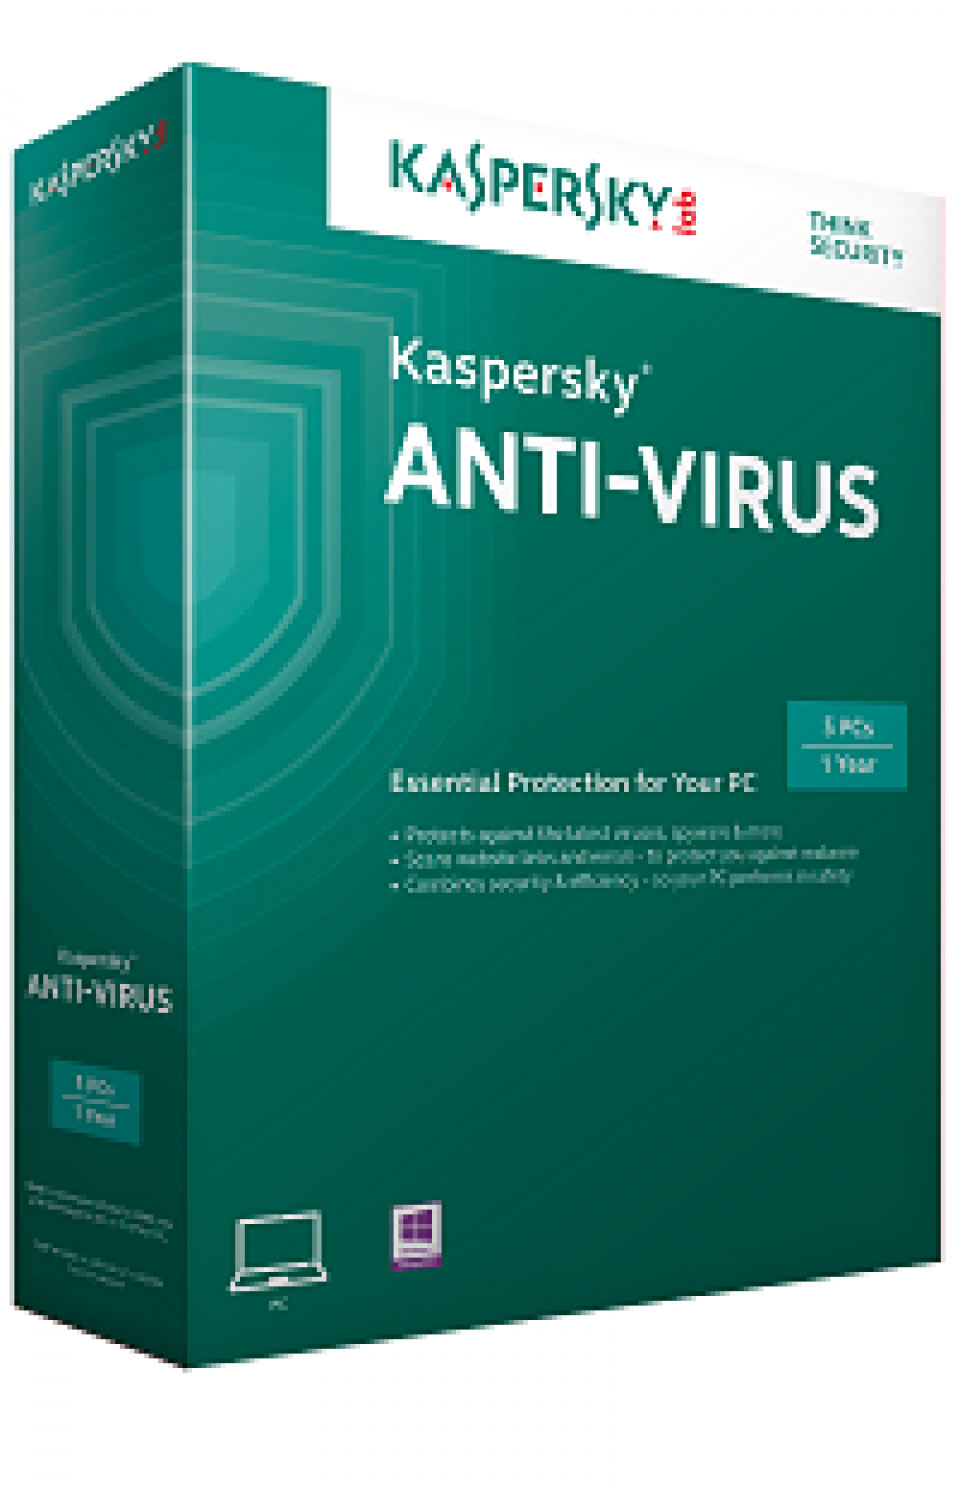 Kaspersky Antivirus Single User (2015 Version)